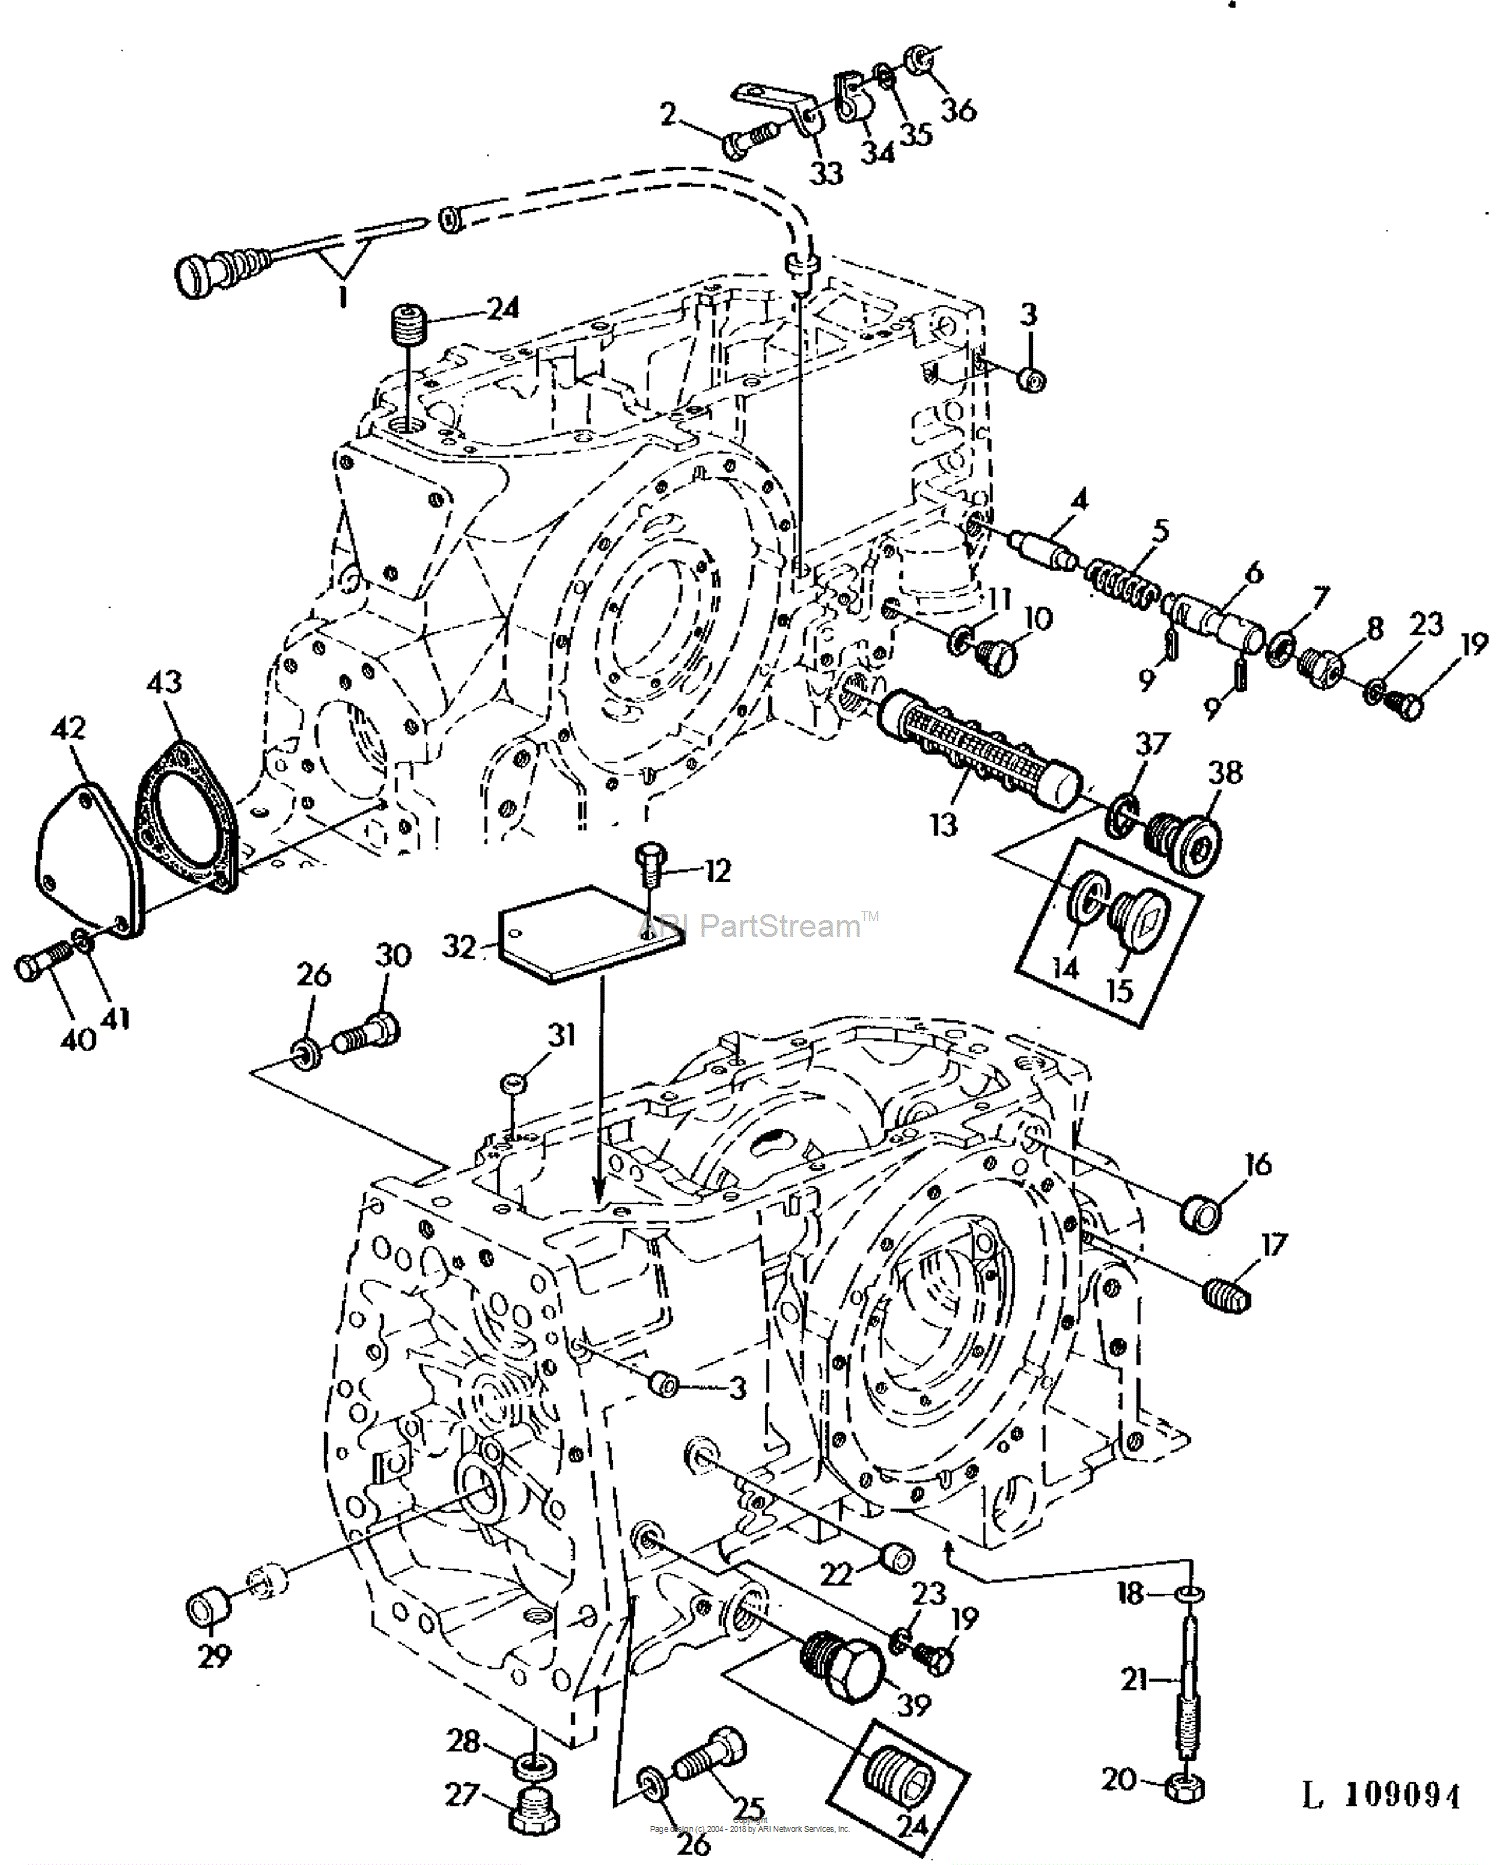 john deere 140 wiring diagram single coil for farmall 706 tractor database case ih 485 schematic 806 international on